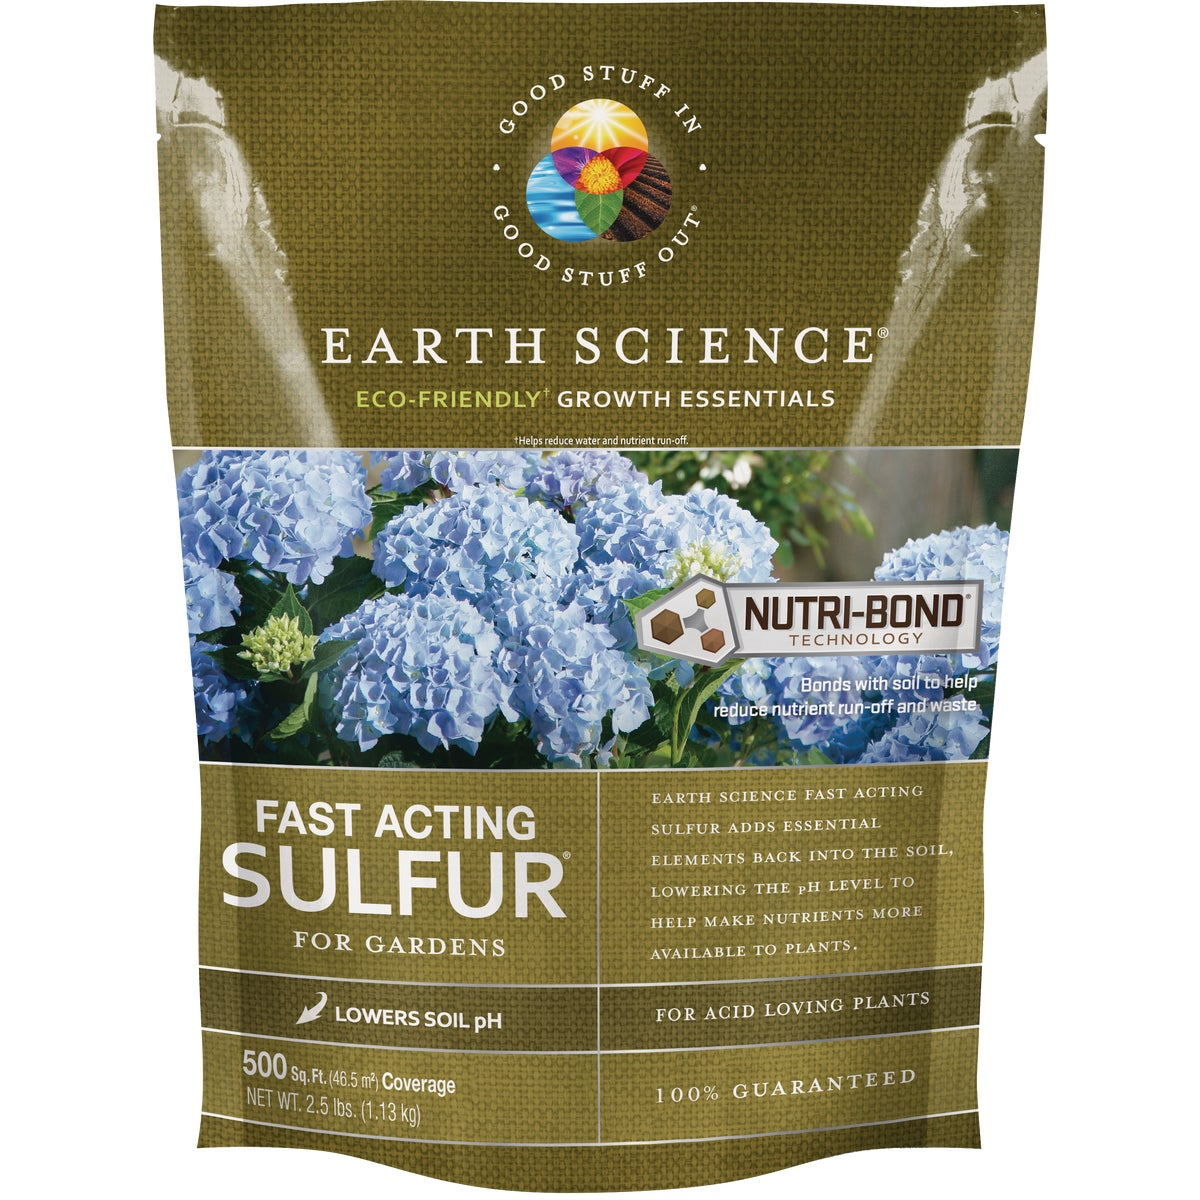 2.5LB GARDEN SULFUR - 10615-6 by Encap Llc